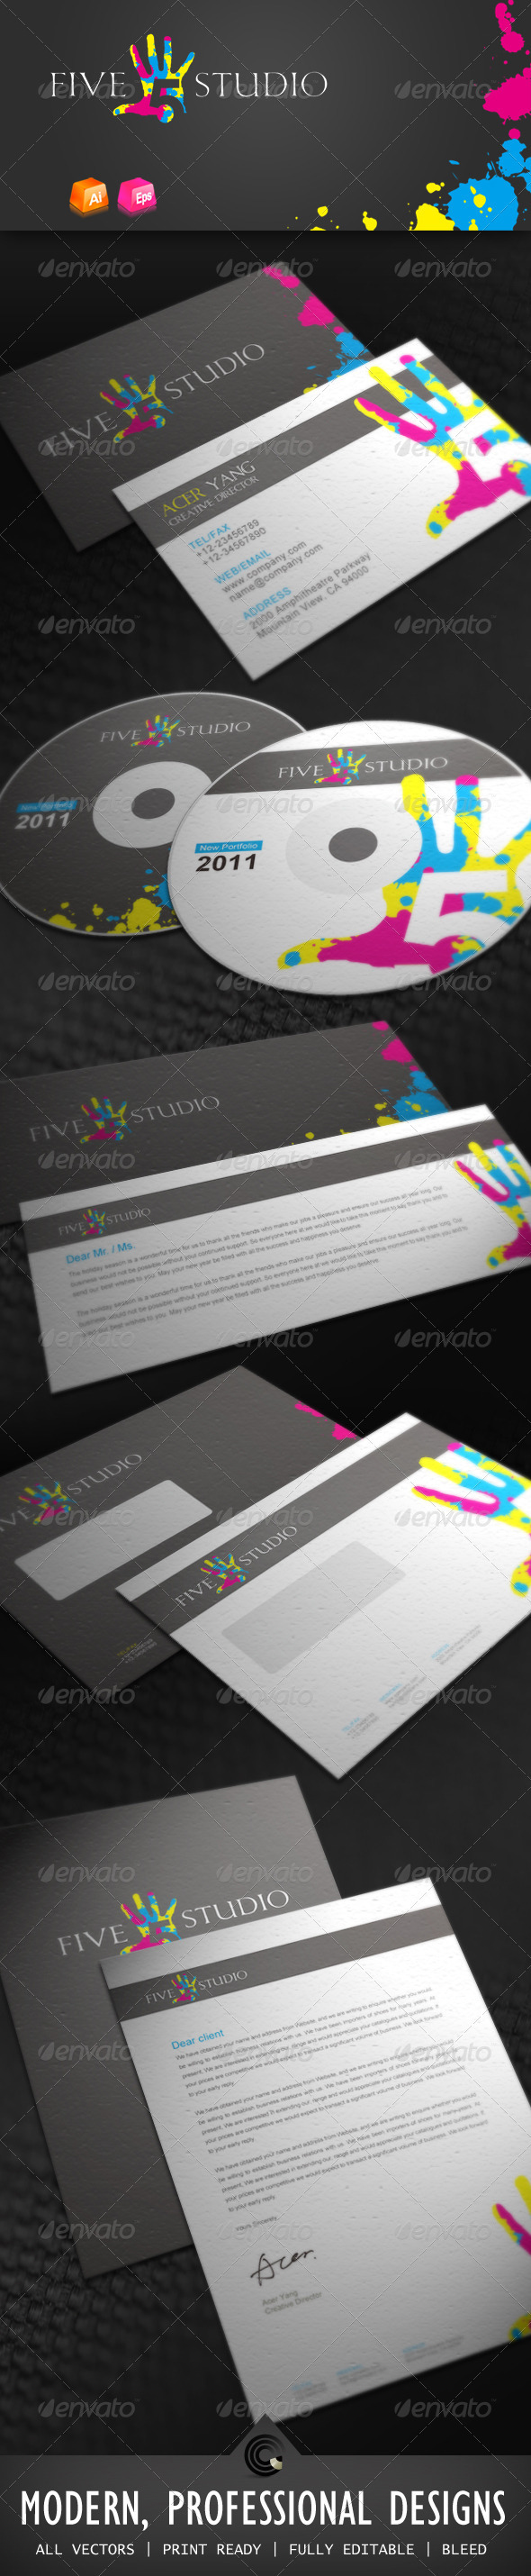 Five Studio Corporate Identity - Stationery Print Templates